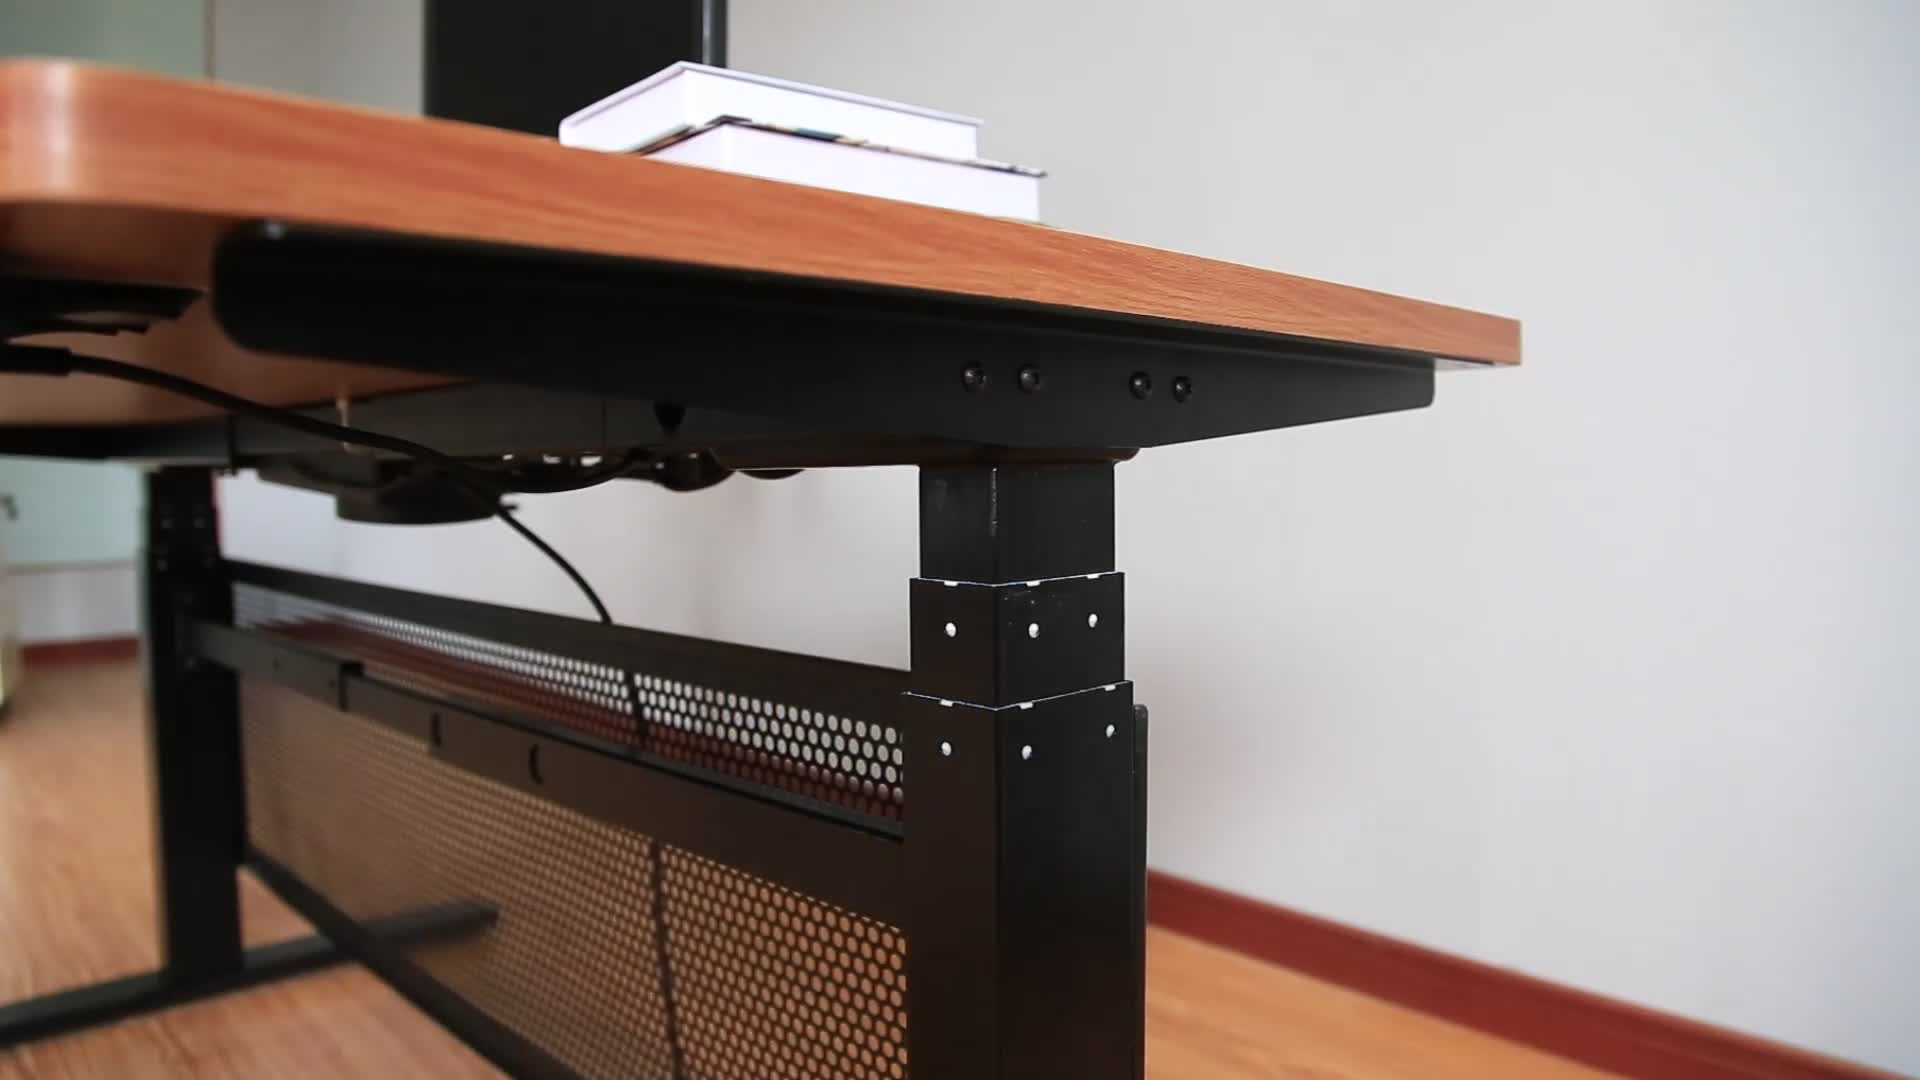 HighRise Electric Height Adjustable Table Base for Sit-to-Stand Desk